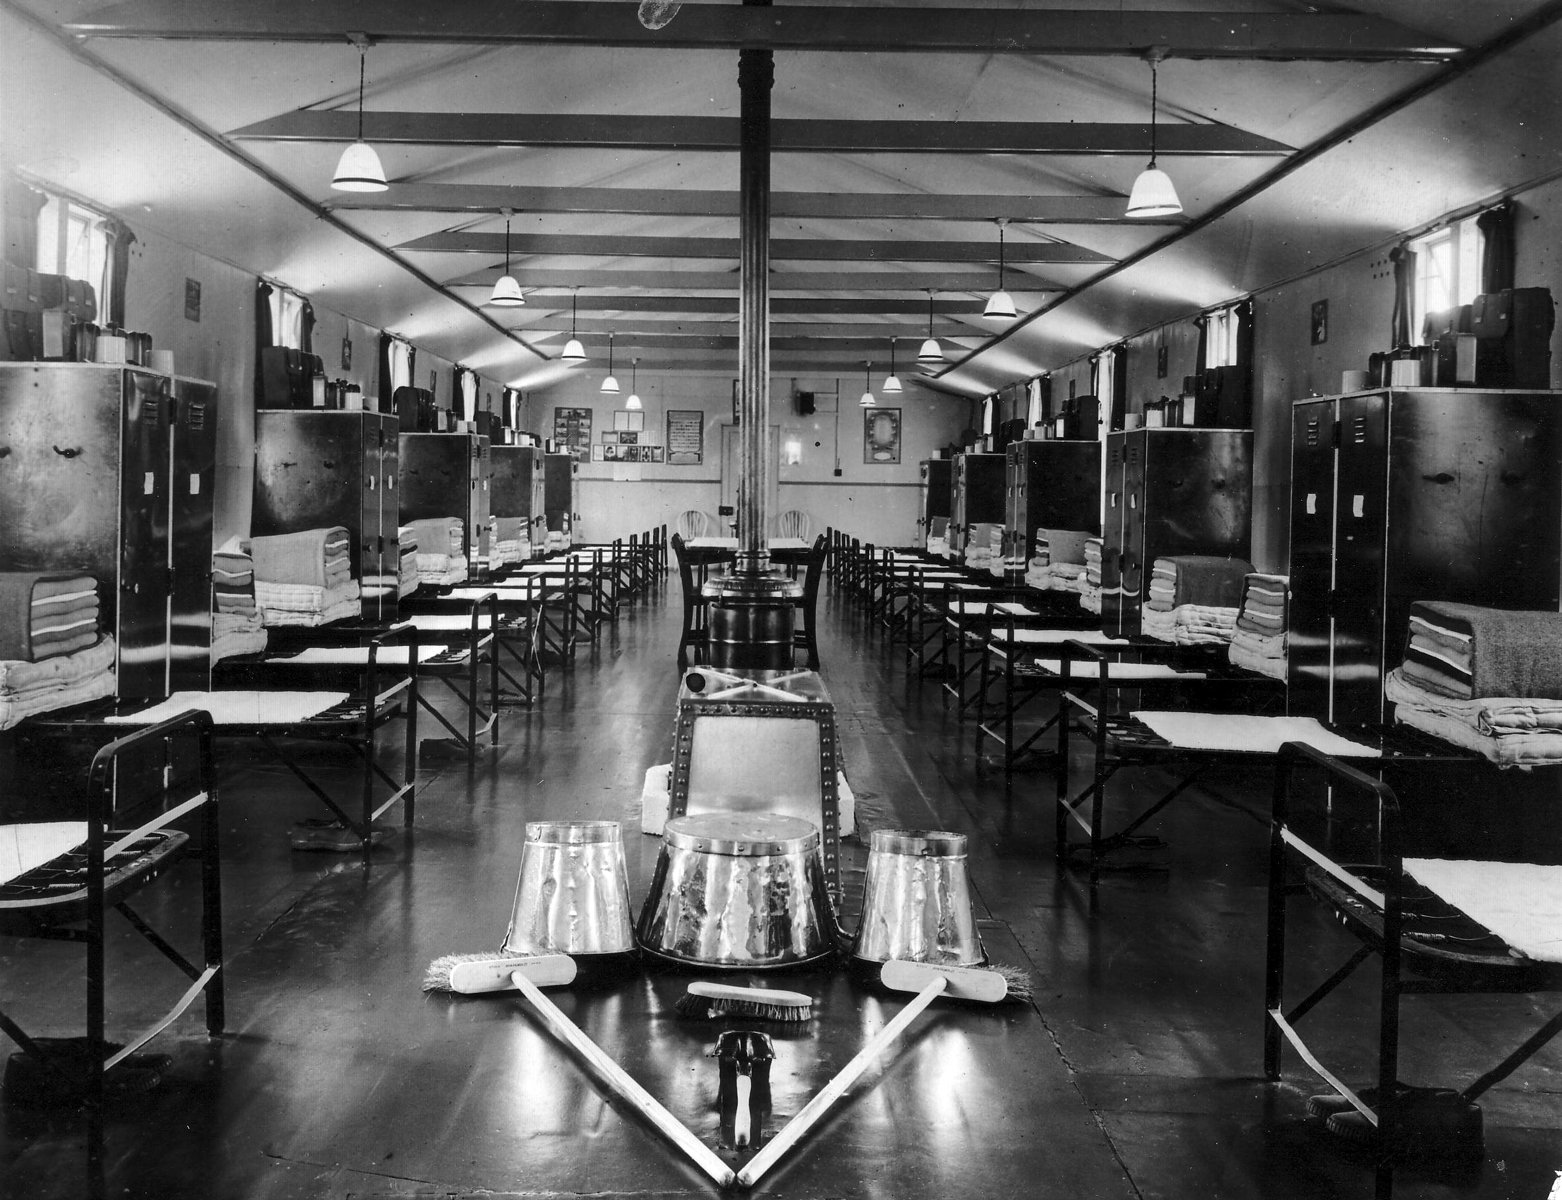 Barracks Cleaned And Ready For Inspection 1950s